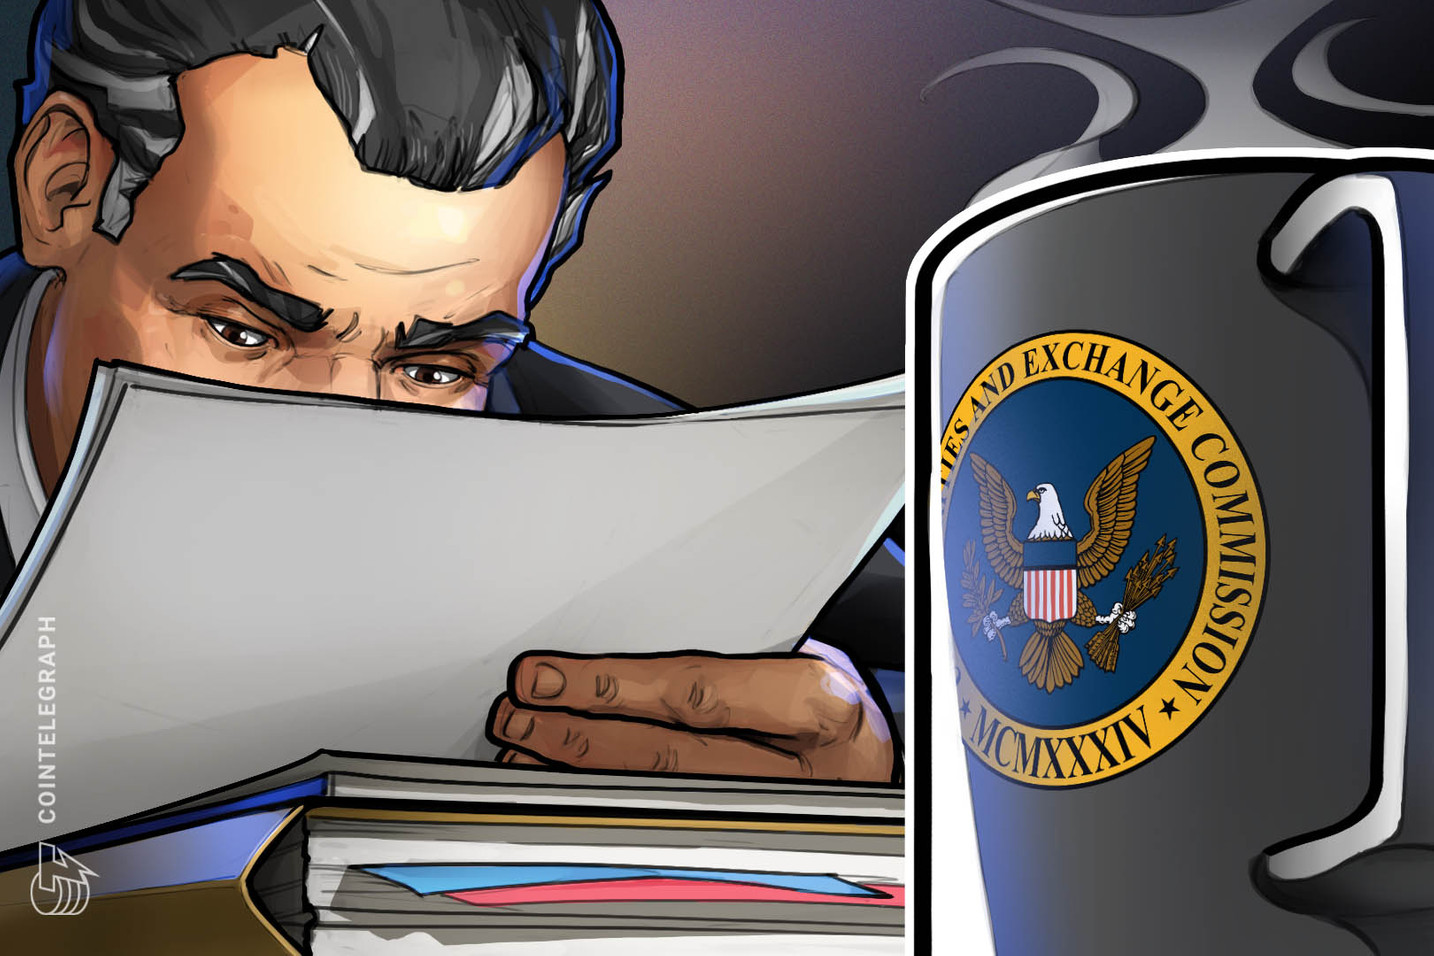 US SEC Report Notes Trading Suspensions, Actions Against Crypto Firms in 2019